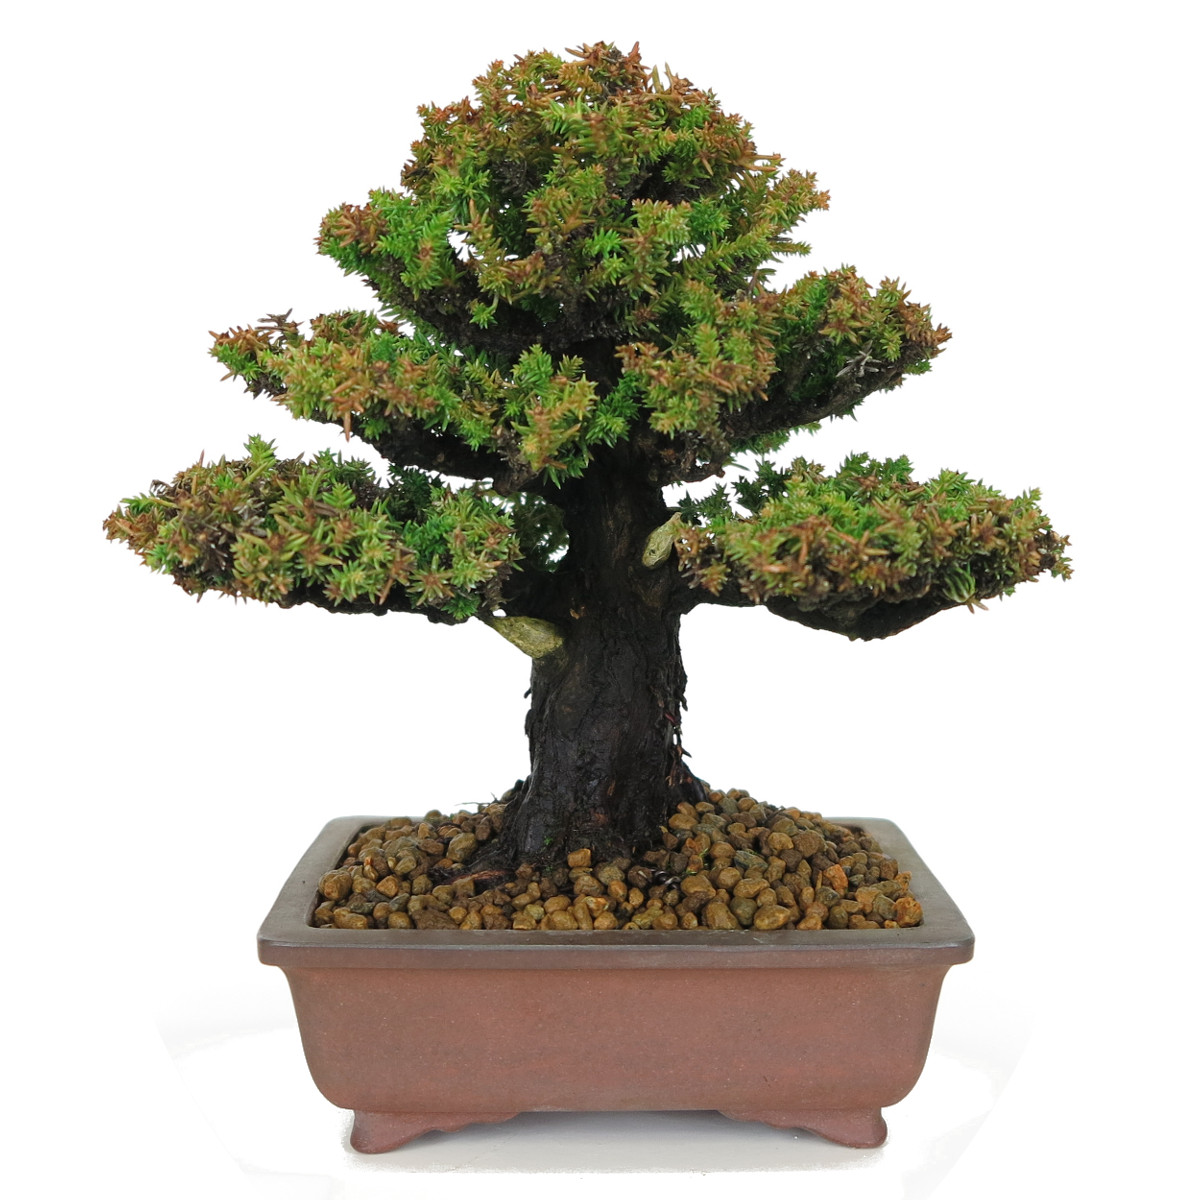 cryptomeria japonica bonsai